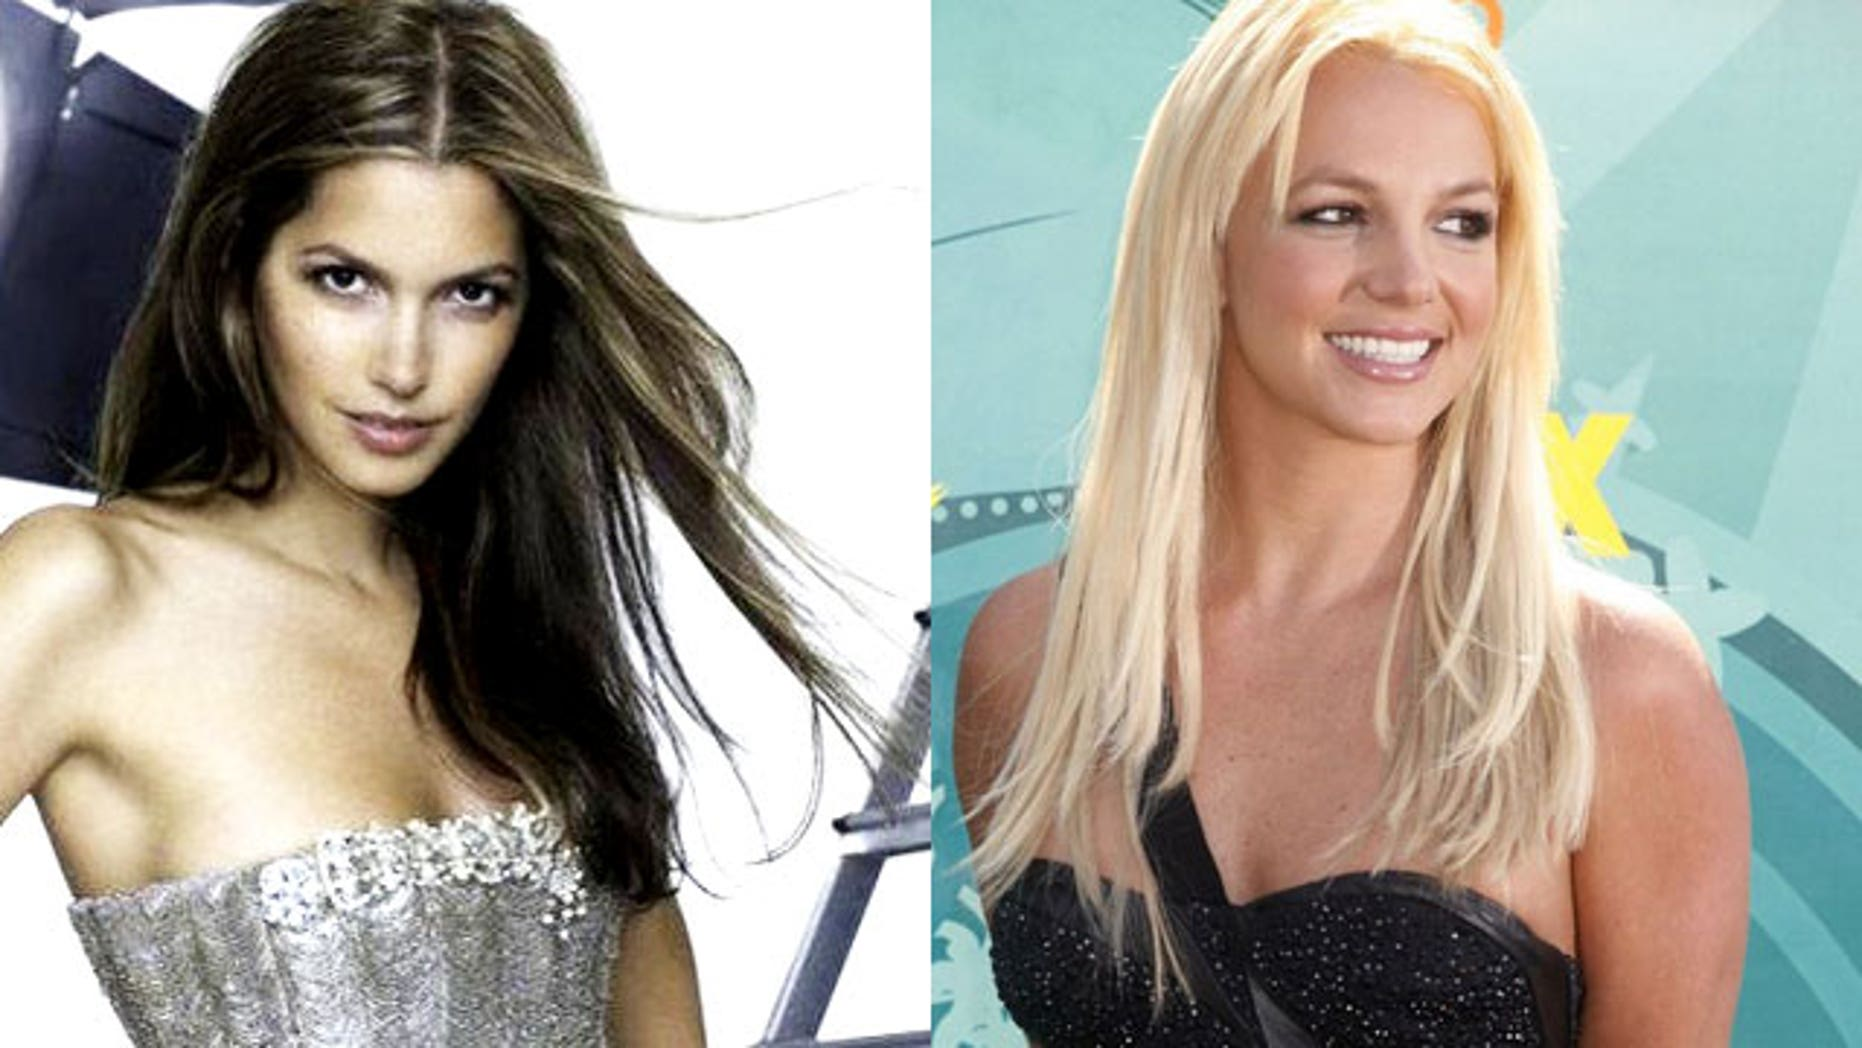 Photographer Indrani (l), along with professional partner Marcus Klinko, says Spears (r) was the hottest woman they ever photographed.